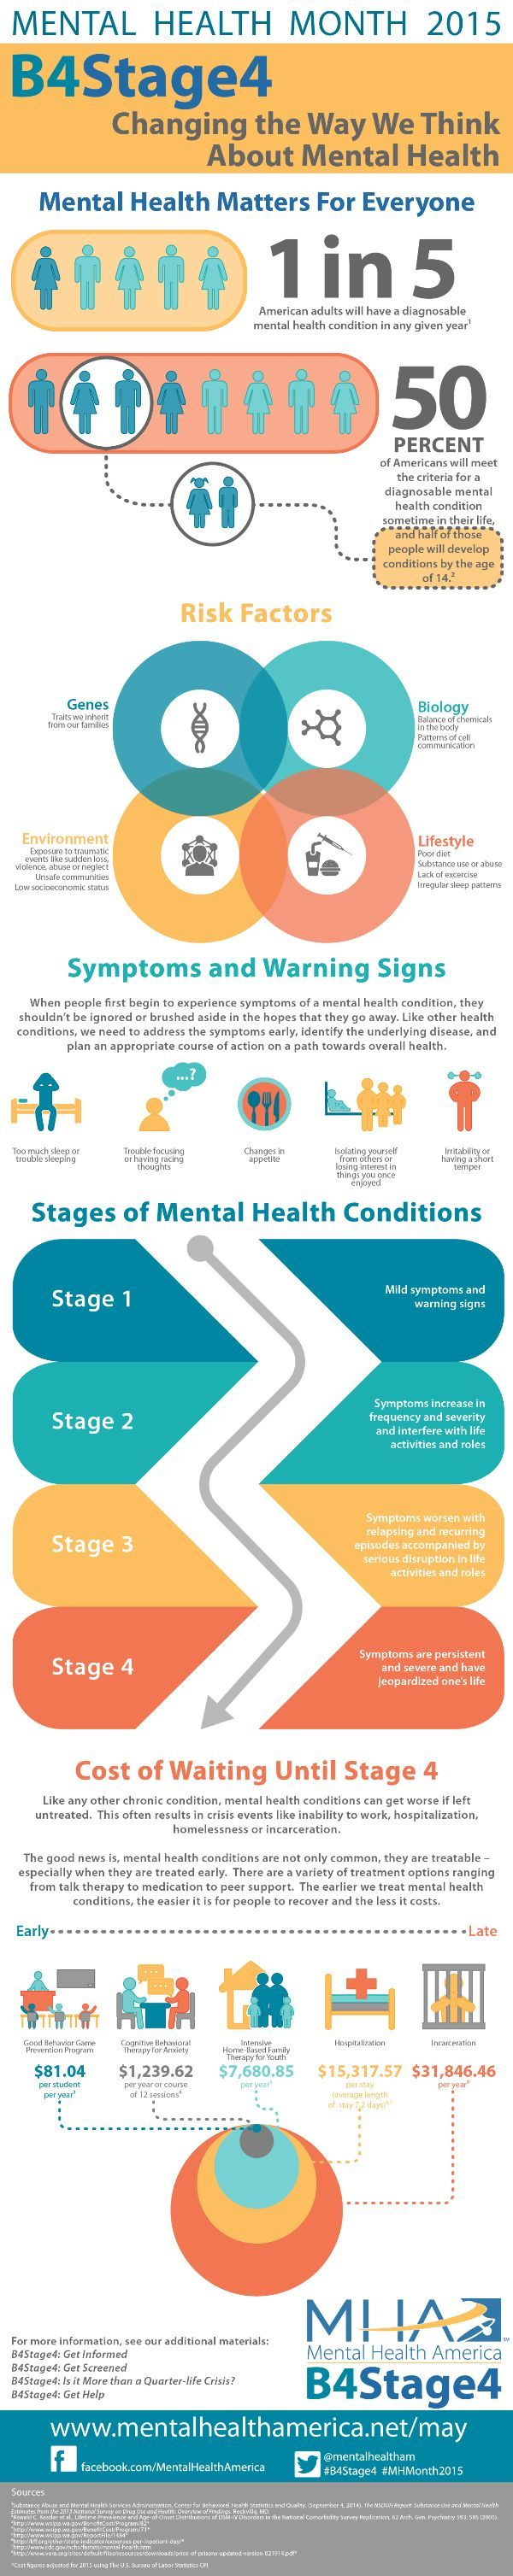 Infographic outlining the Before Stage 4 philosophy #B4Stage4. Mental health concerns are no different from any other physical health concerns.  They should be thought about and treated the same way – long before they reach Stage 4.